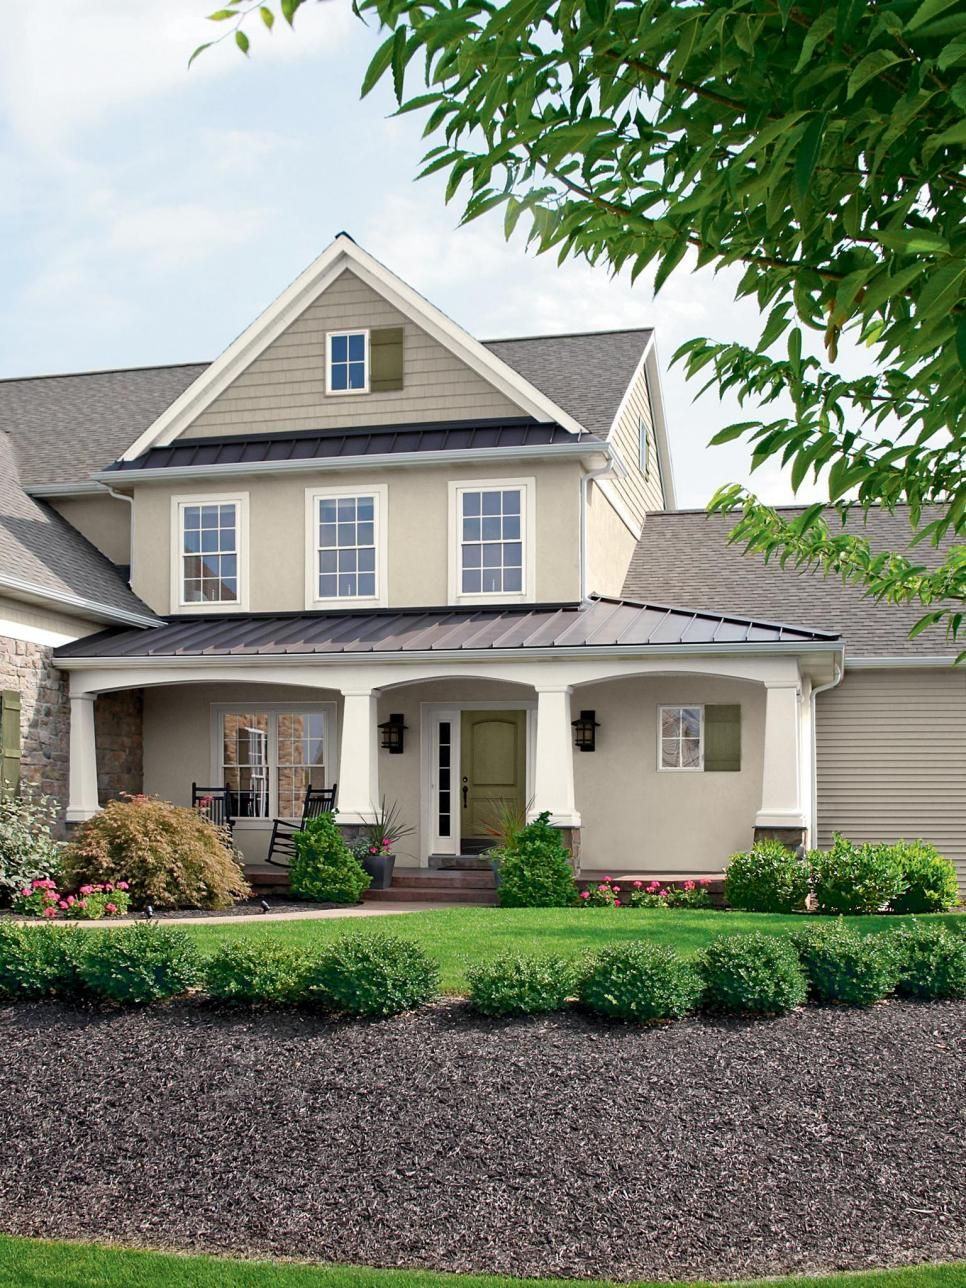 28 Inviting Home Exterior Color Ideas House Paint Exterior